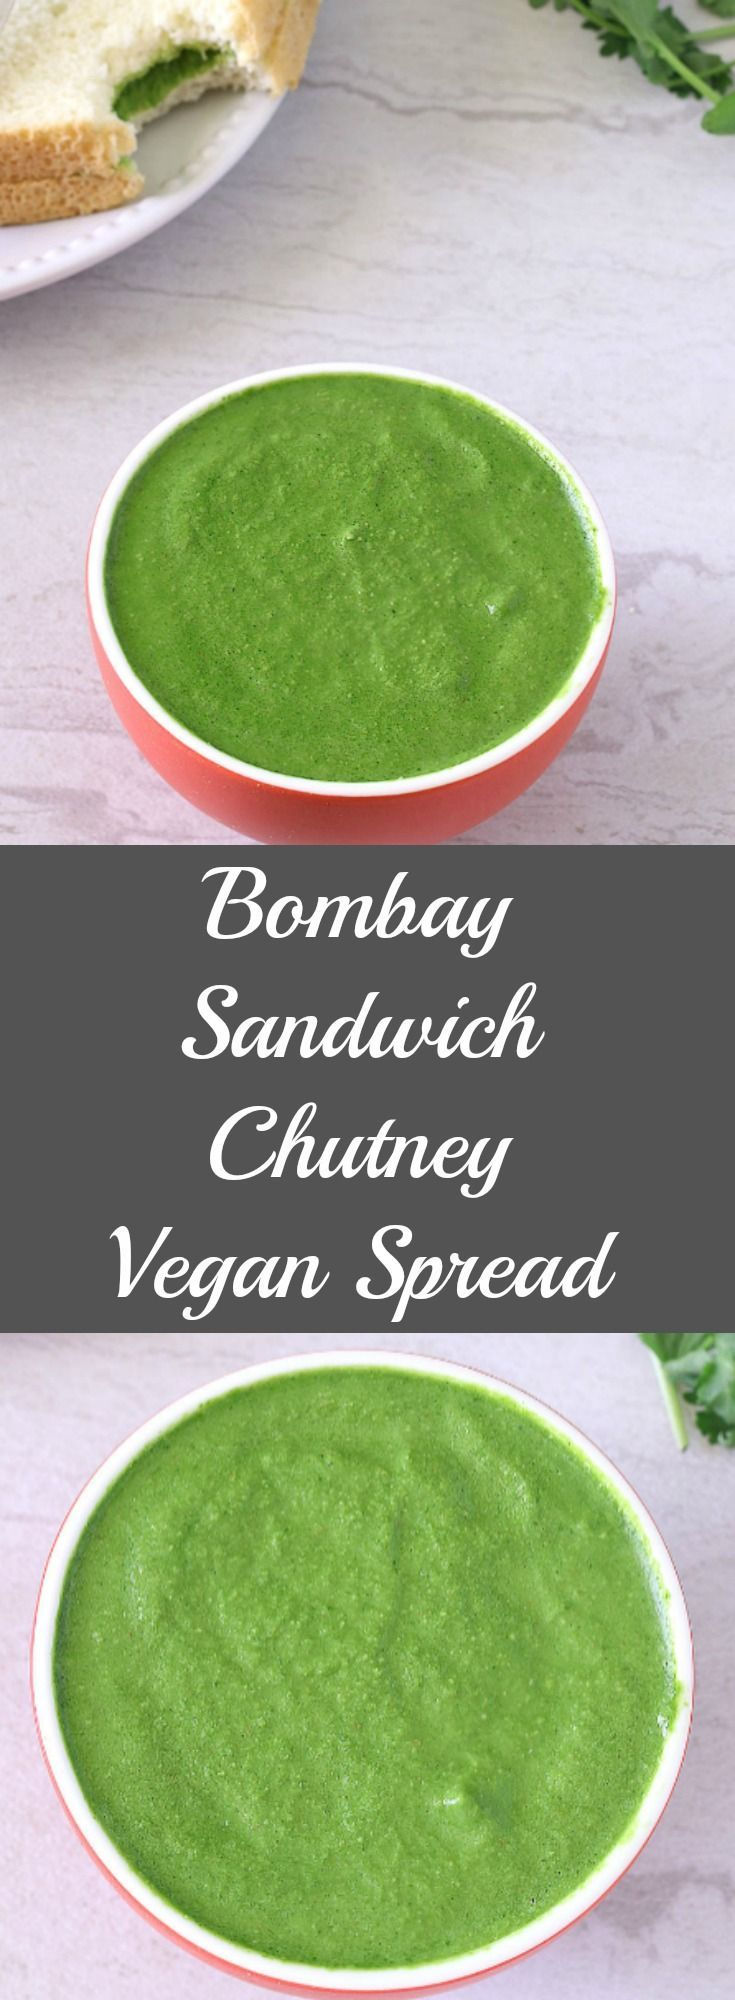 Bombay Sandwich Chutney is green chutney recipe for sandwiches. Green Chutney is one of the healthiest addition and is used often in Indian cuisine as a dip with fried snacks, for chaats and also to make Sandwiches. This chutney aids in good digestions and enhance the taste of any dish.